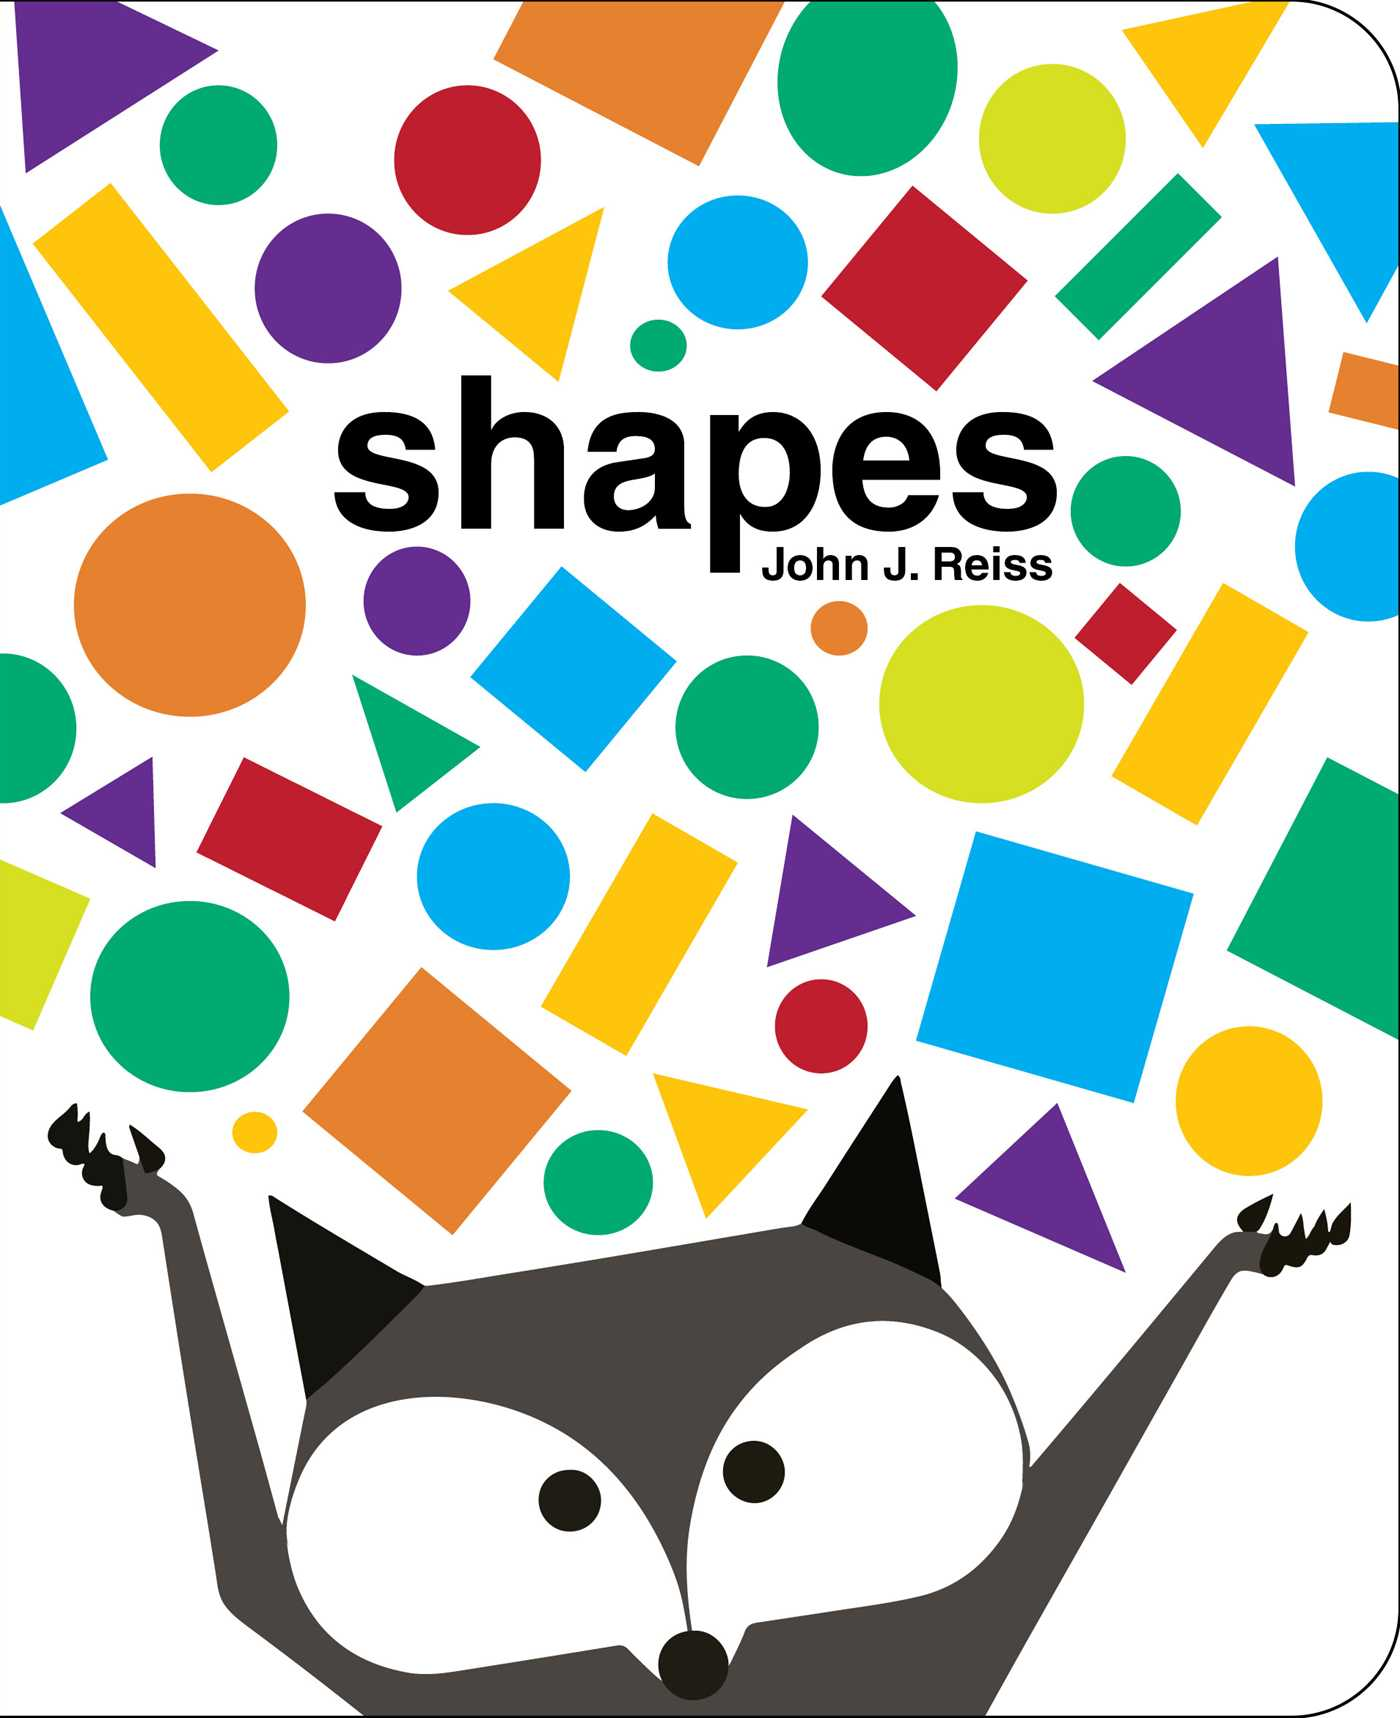 Shapes 9781481476454 hr